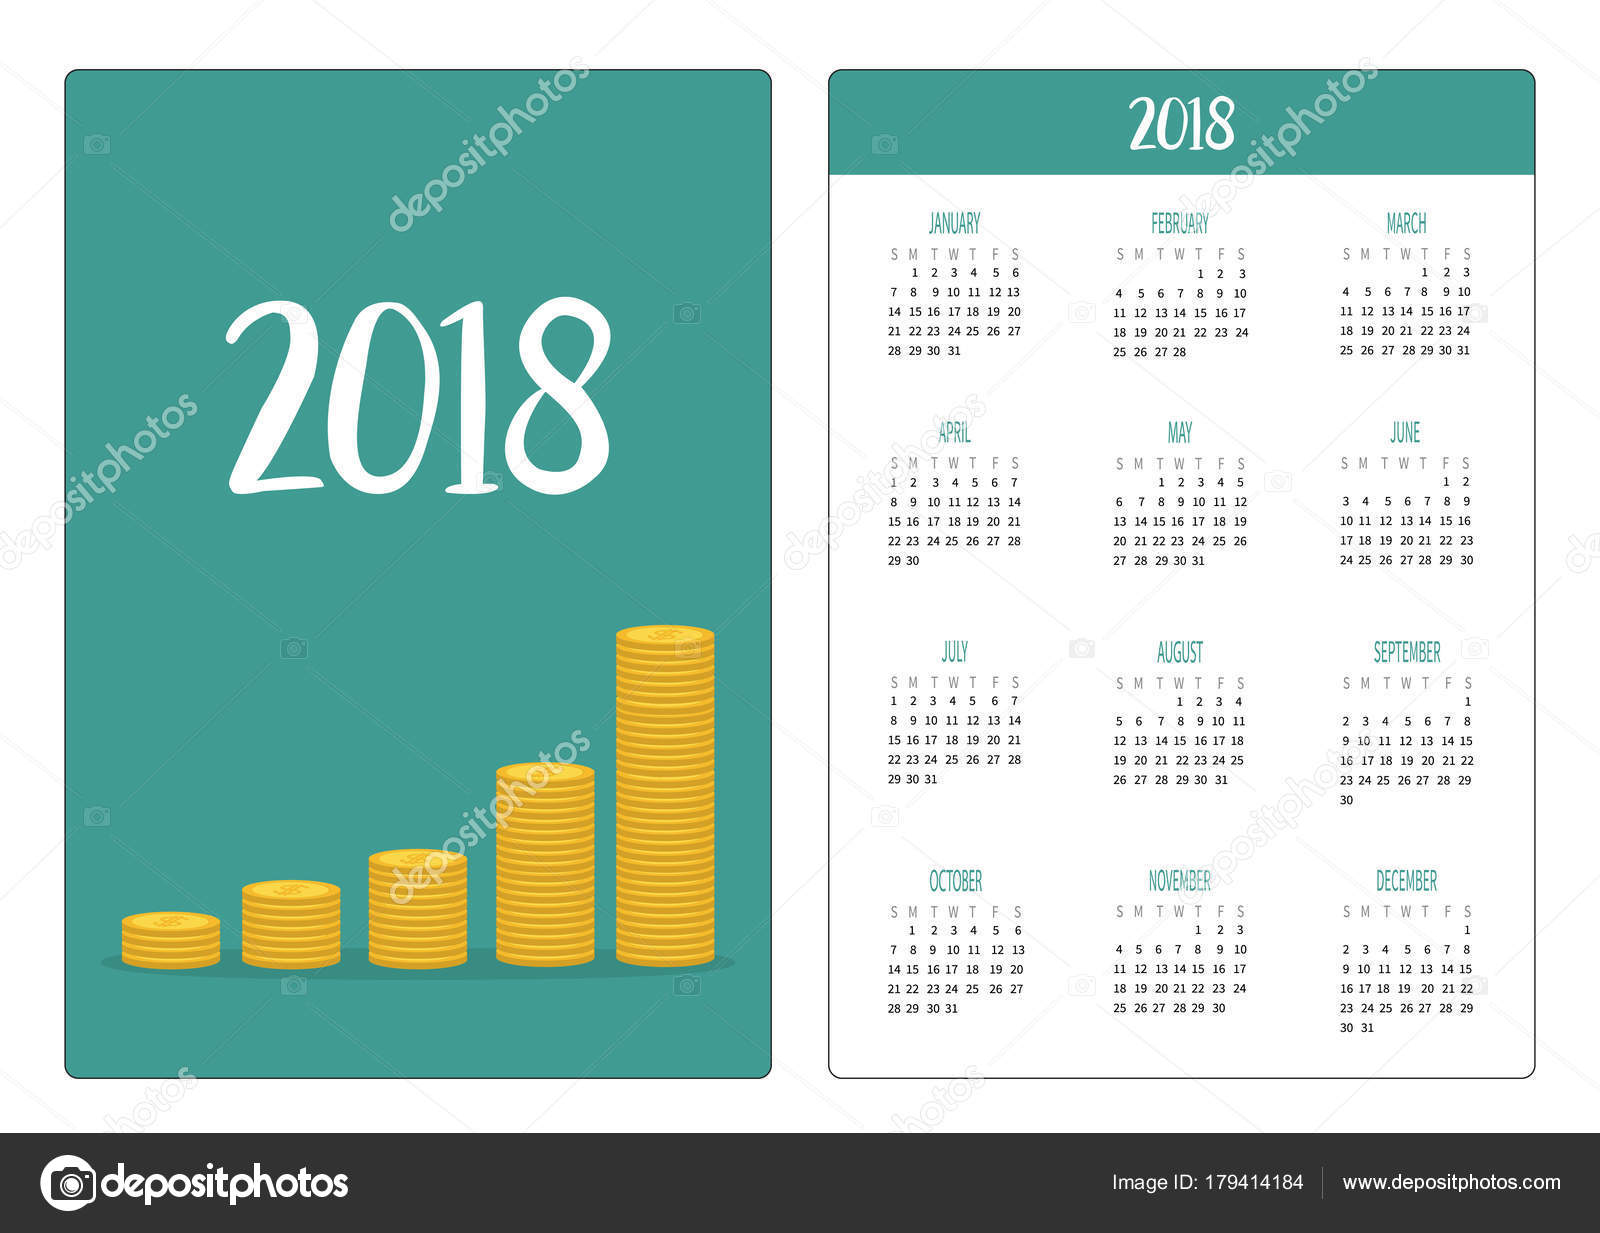 vector illustration design pocket calendar 2018 year gold coin stacks stock vector